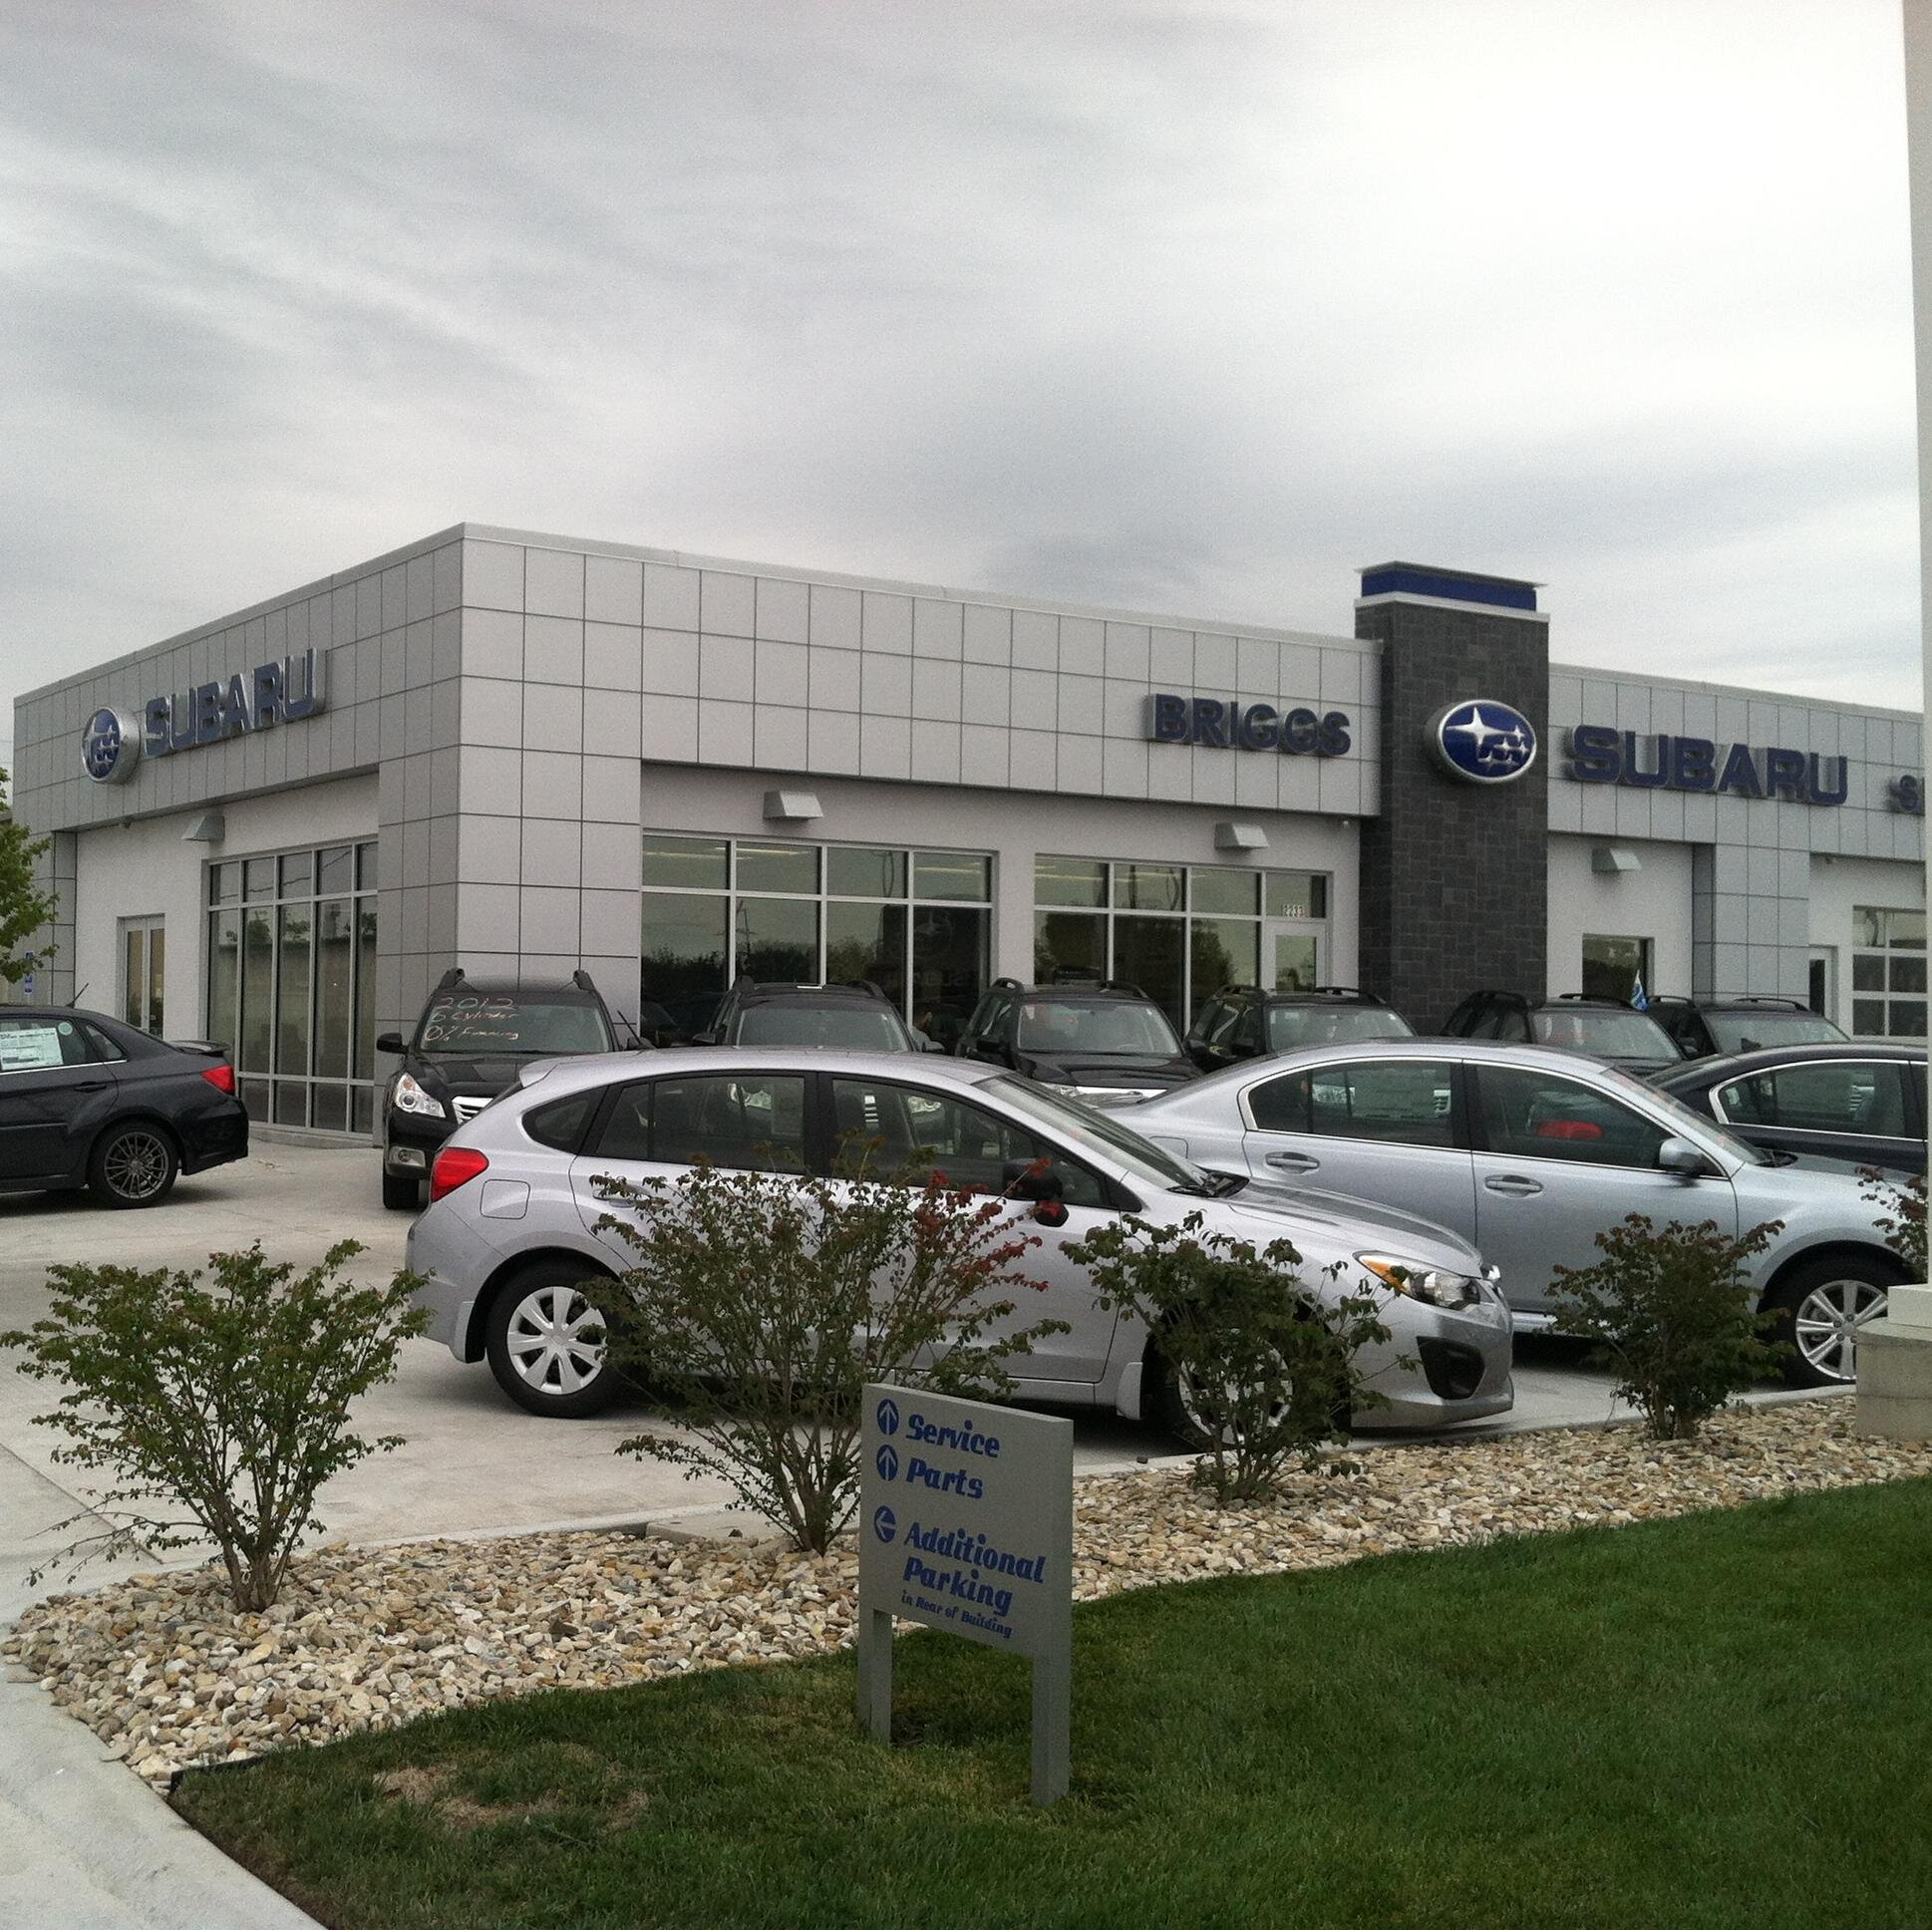 Briggs Lawrence Ks | New Car Release Information